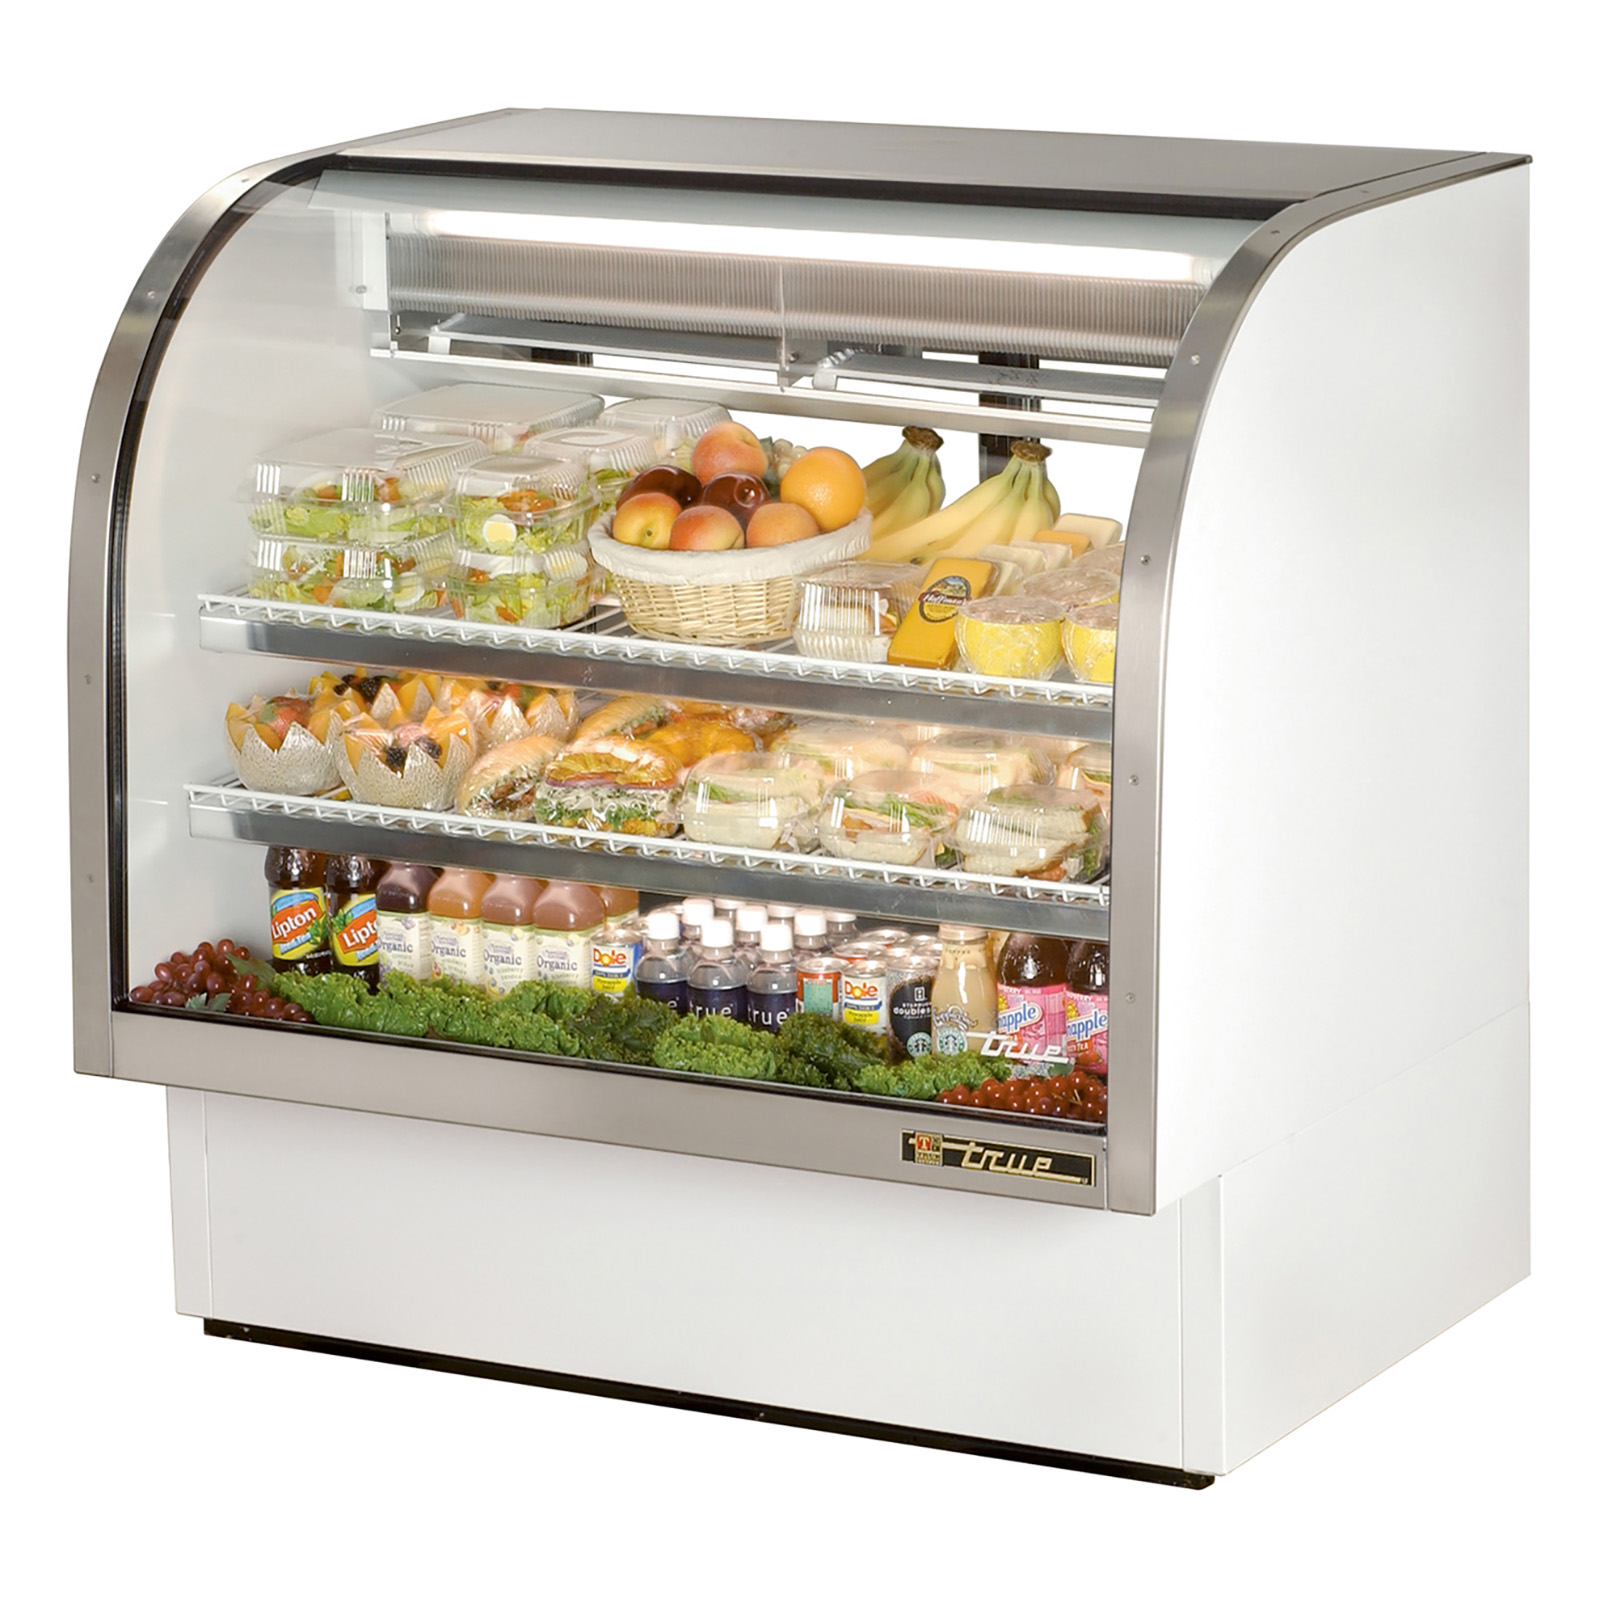 TCGG-48 – True Refrigerated Deli Display